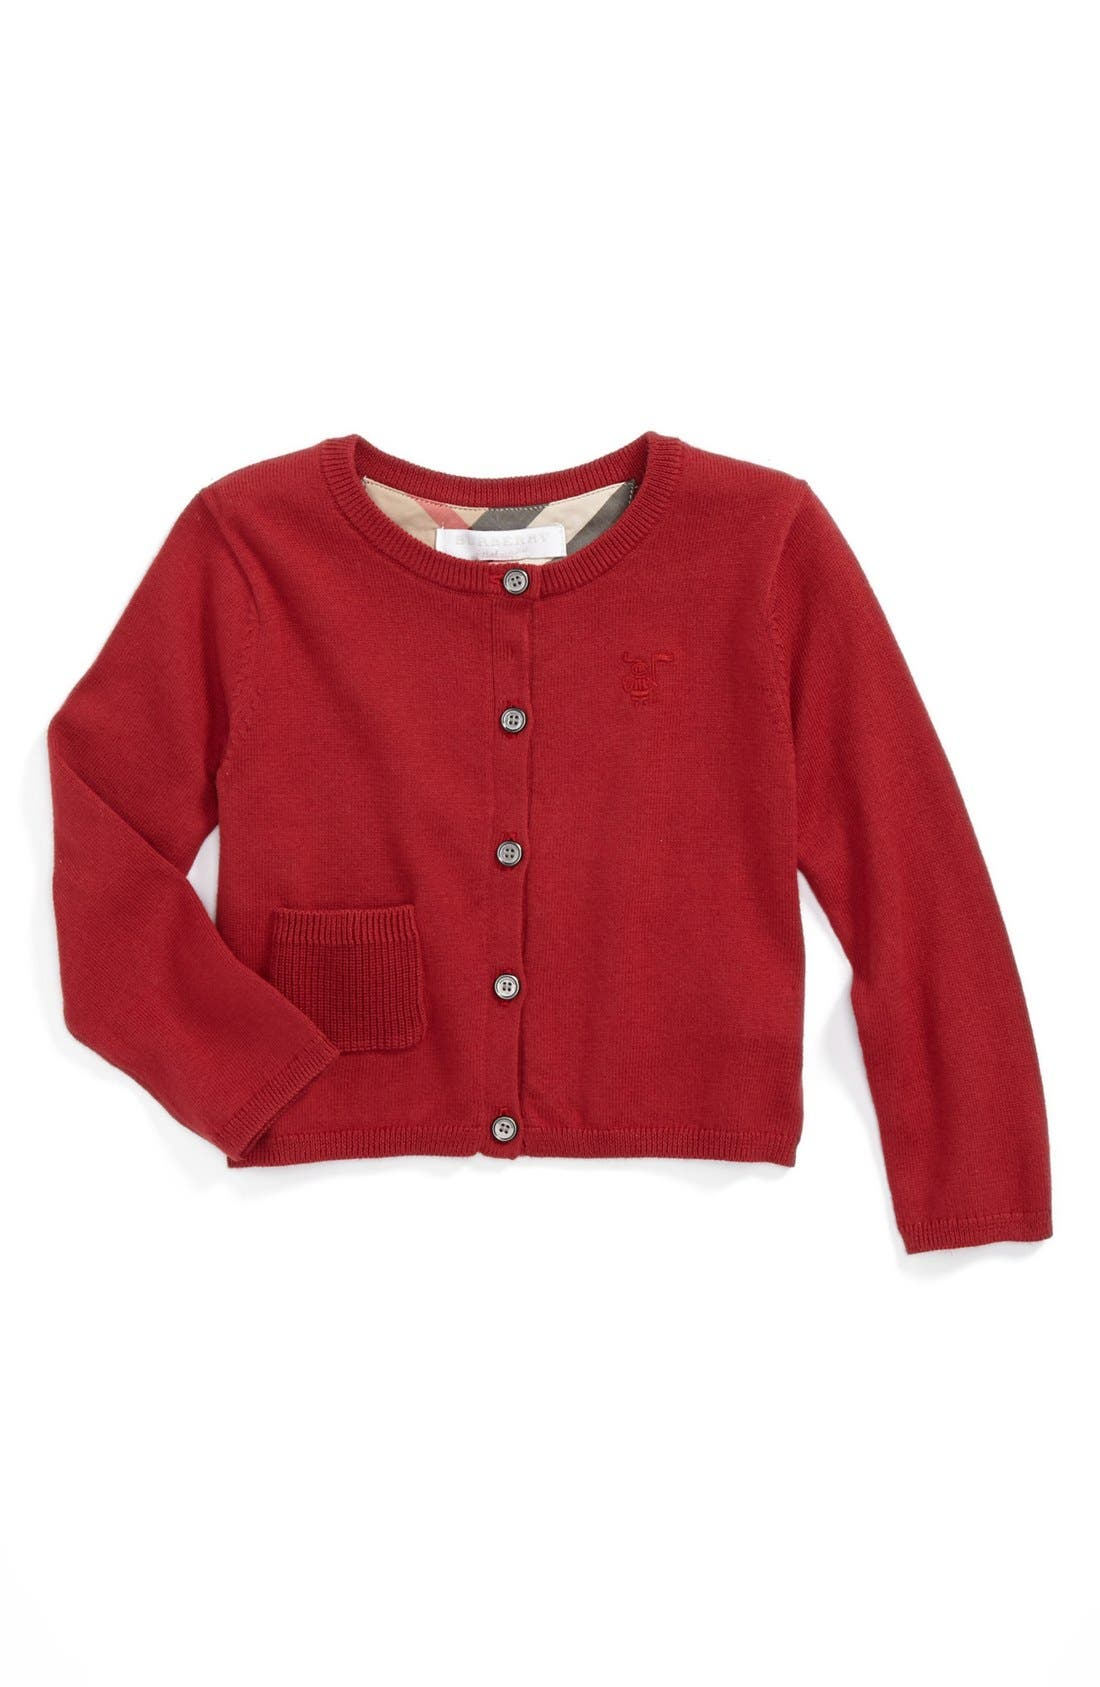 Main Image - Burberry 'Mini Kiki' Cardigan (Toddler Girls)